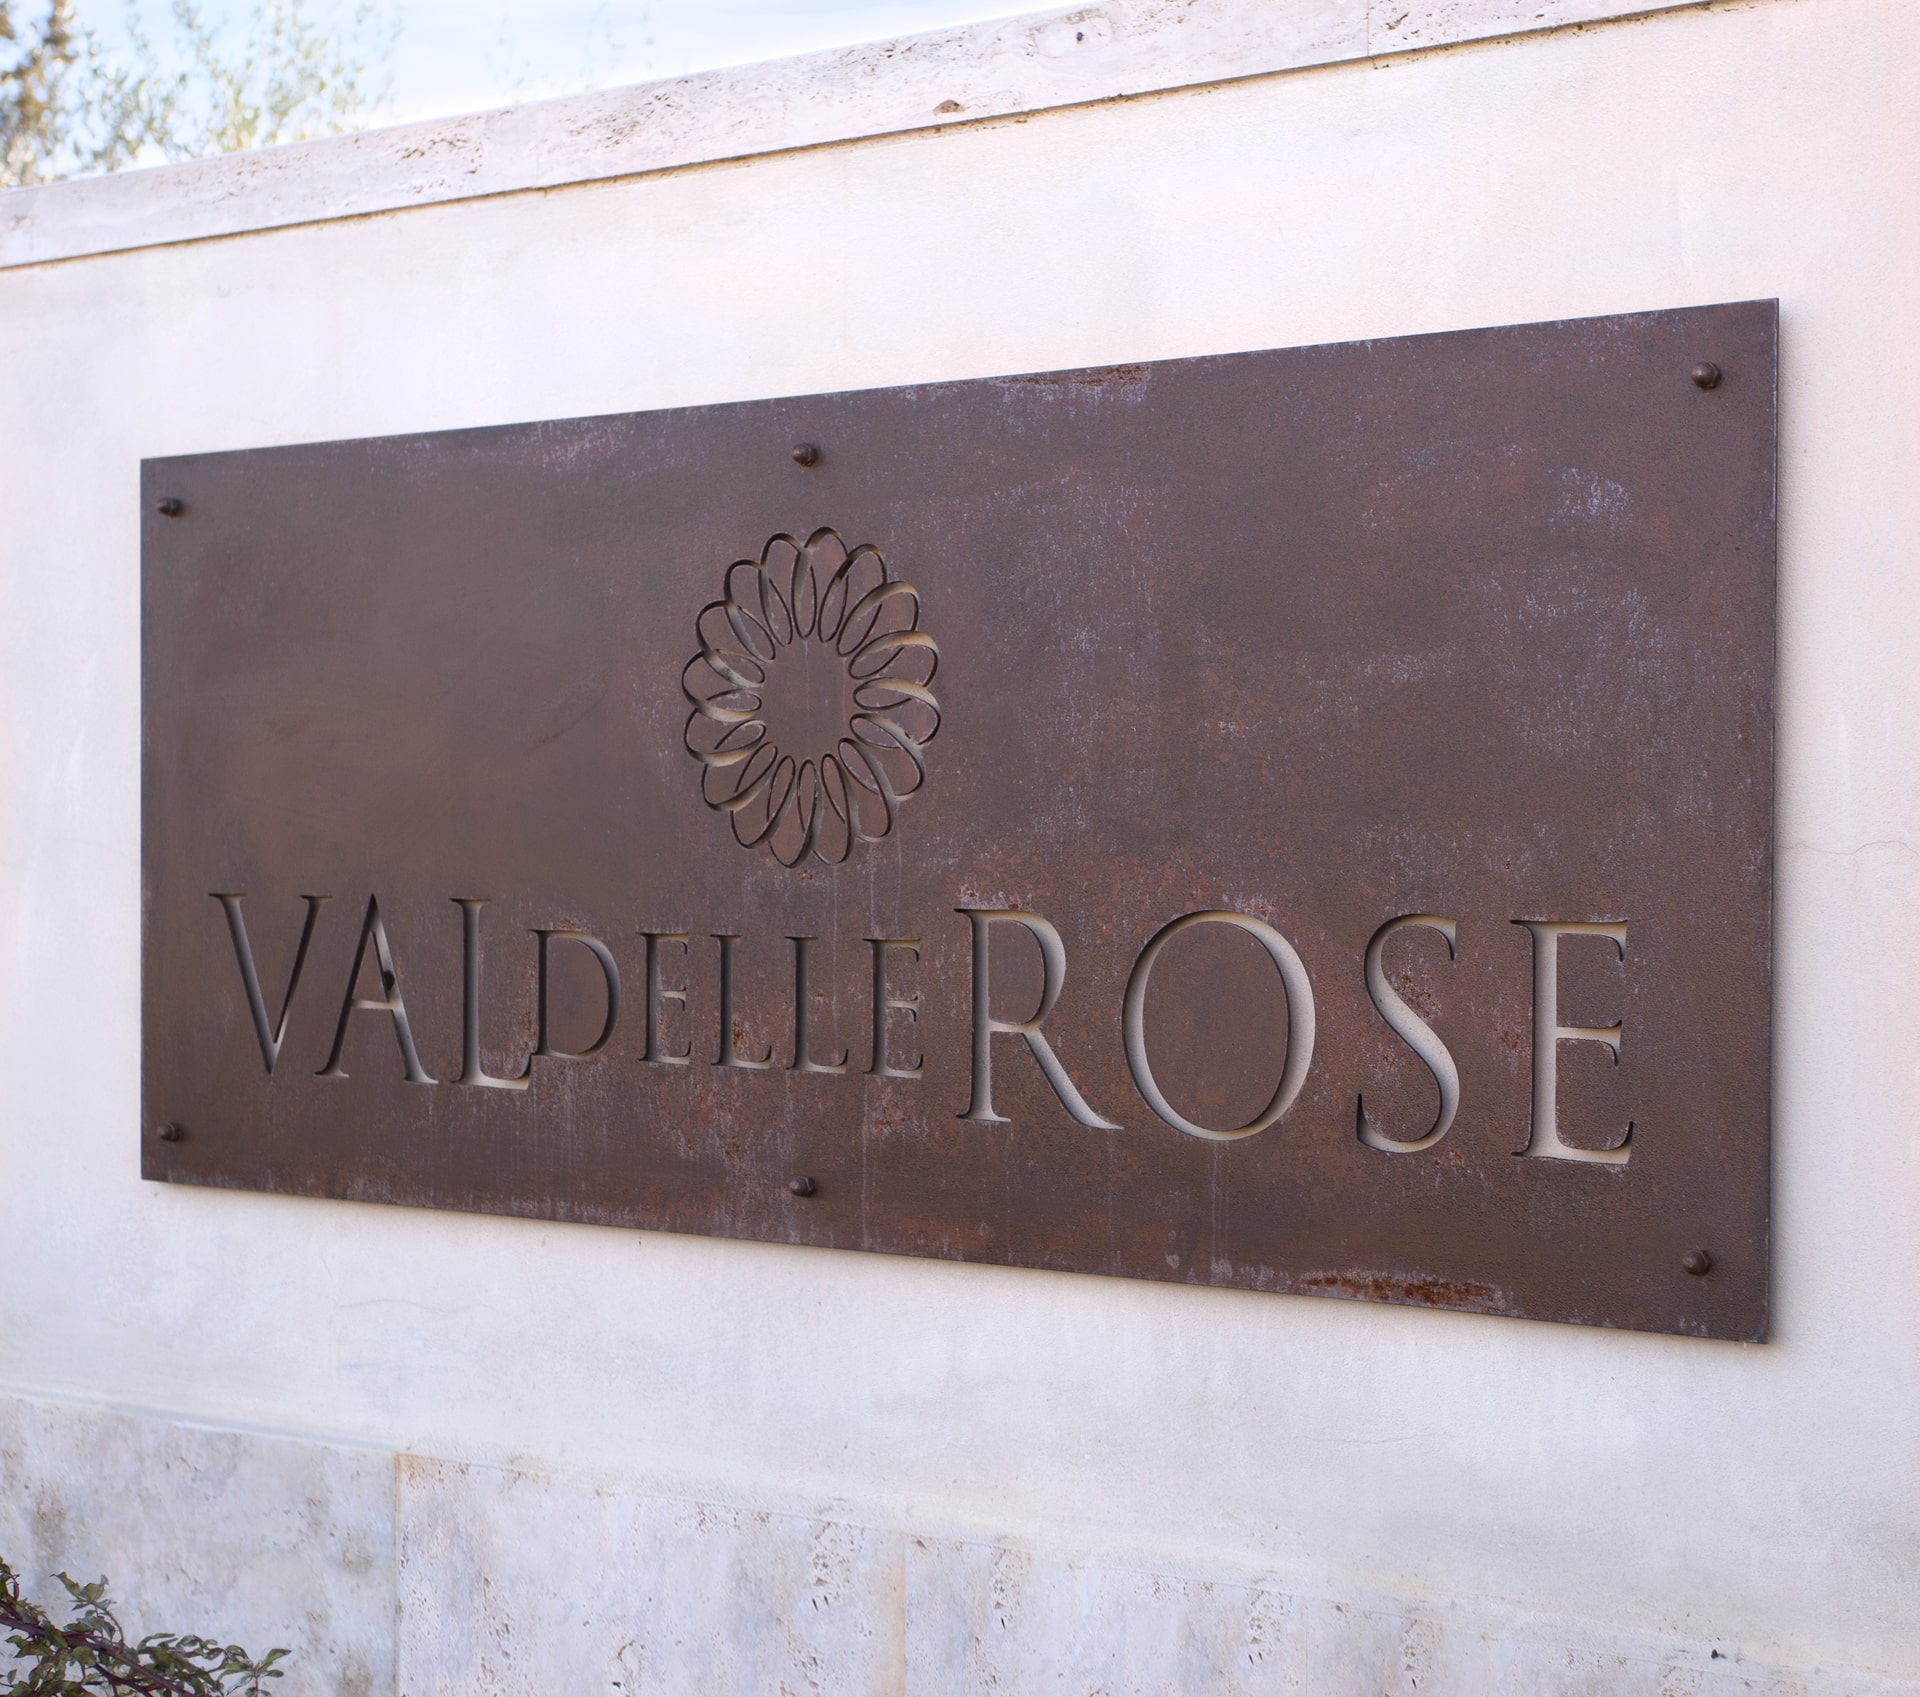 one of the images of Tenuta Val Delle Rose work